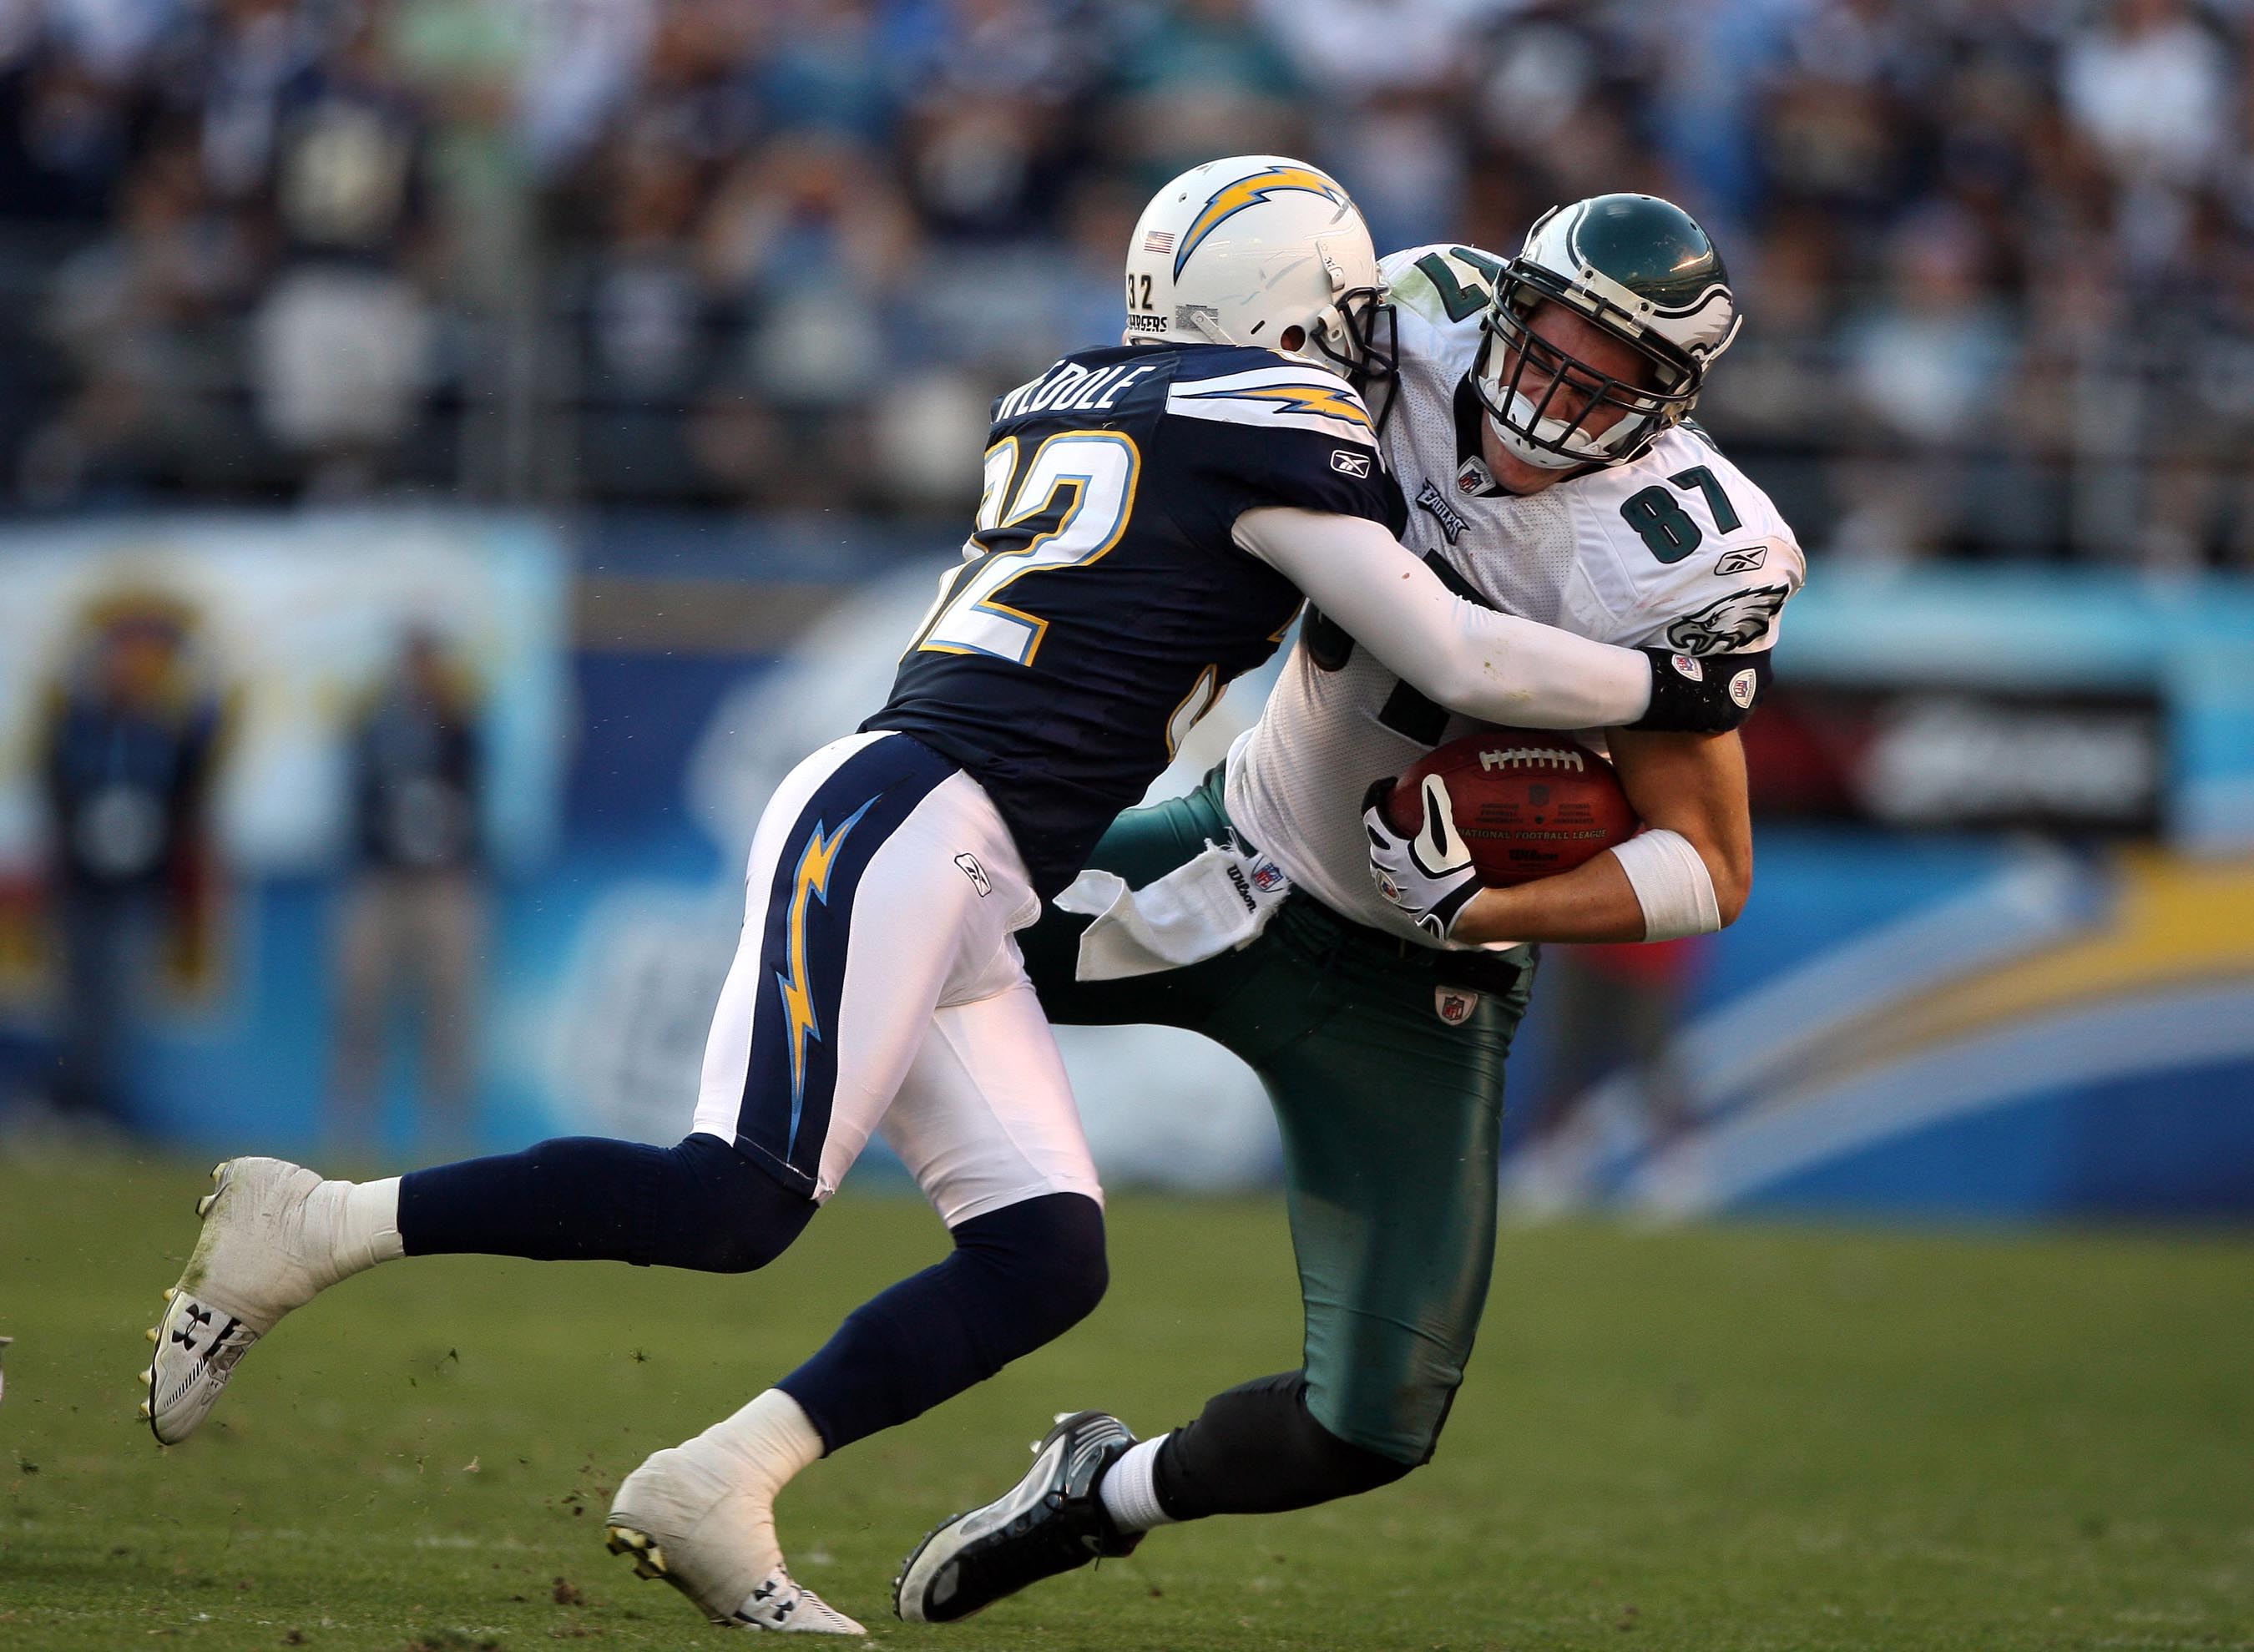 SAN DIEGO, CA - NOVEMBER 15:   Tight-End Brent Celek #87 of the Philadelphia Eagles is tackled after the catch by Eric Weddle #32 of the San Diego Chargers during the NFL football game on November 15, 2009 at Qualcomm Stadium in San Diego, California. Cha